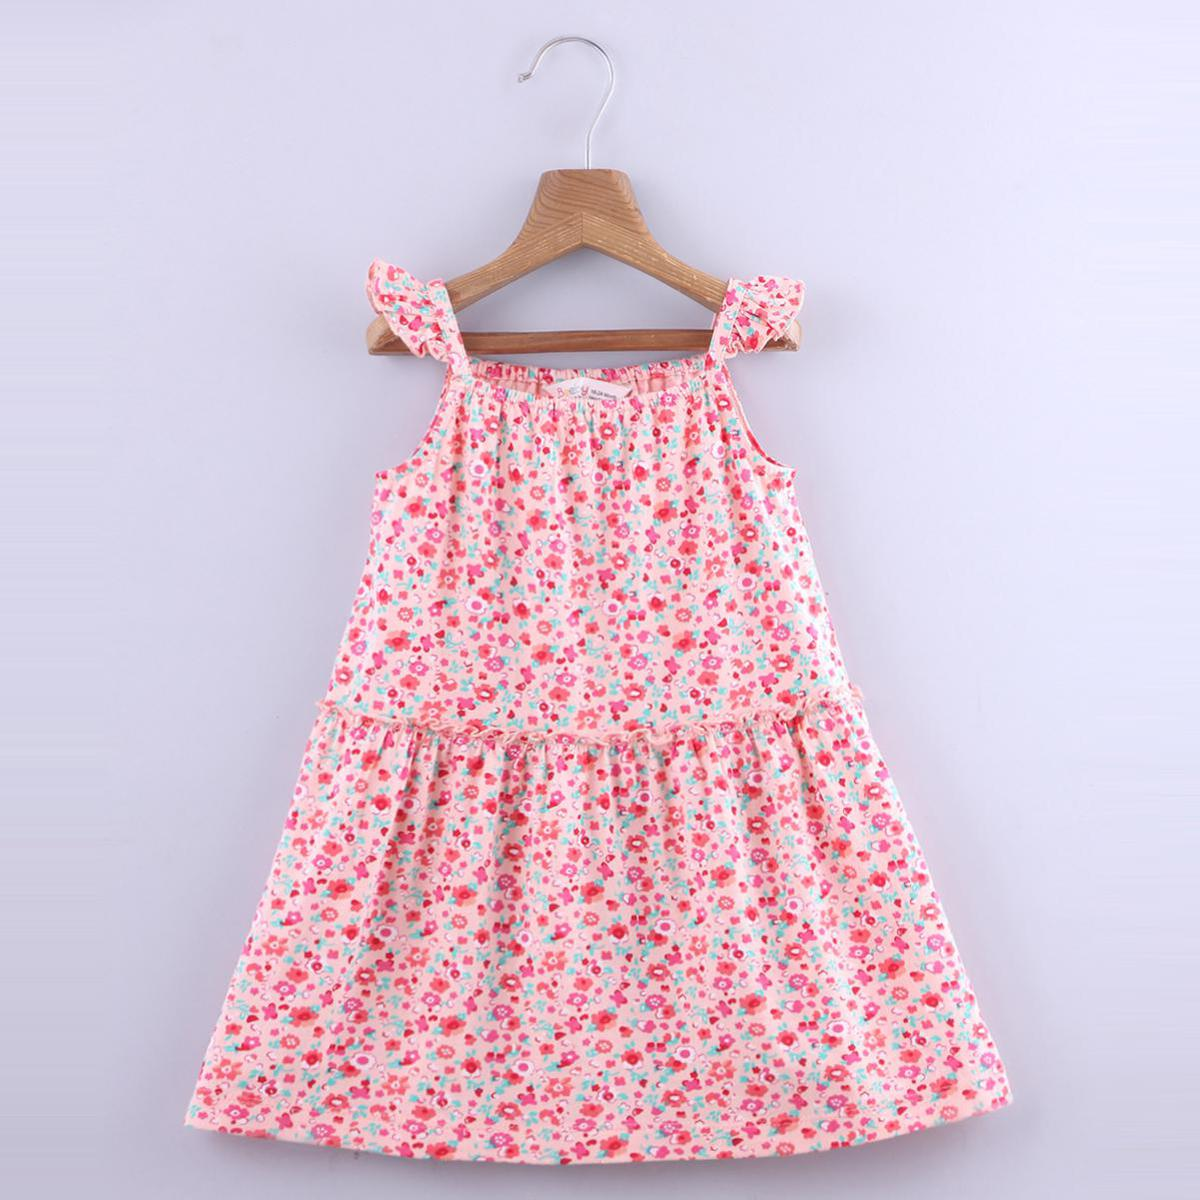 Beebay - Peach Colored Ditsy Floral Jersey Cotton Dress For Girls